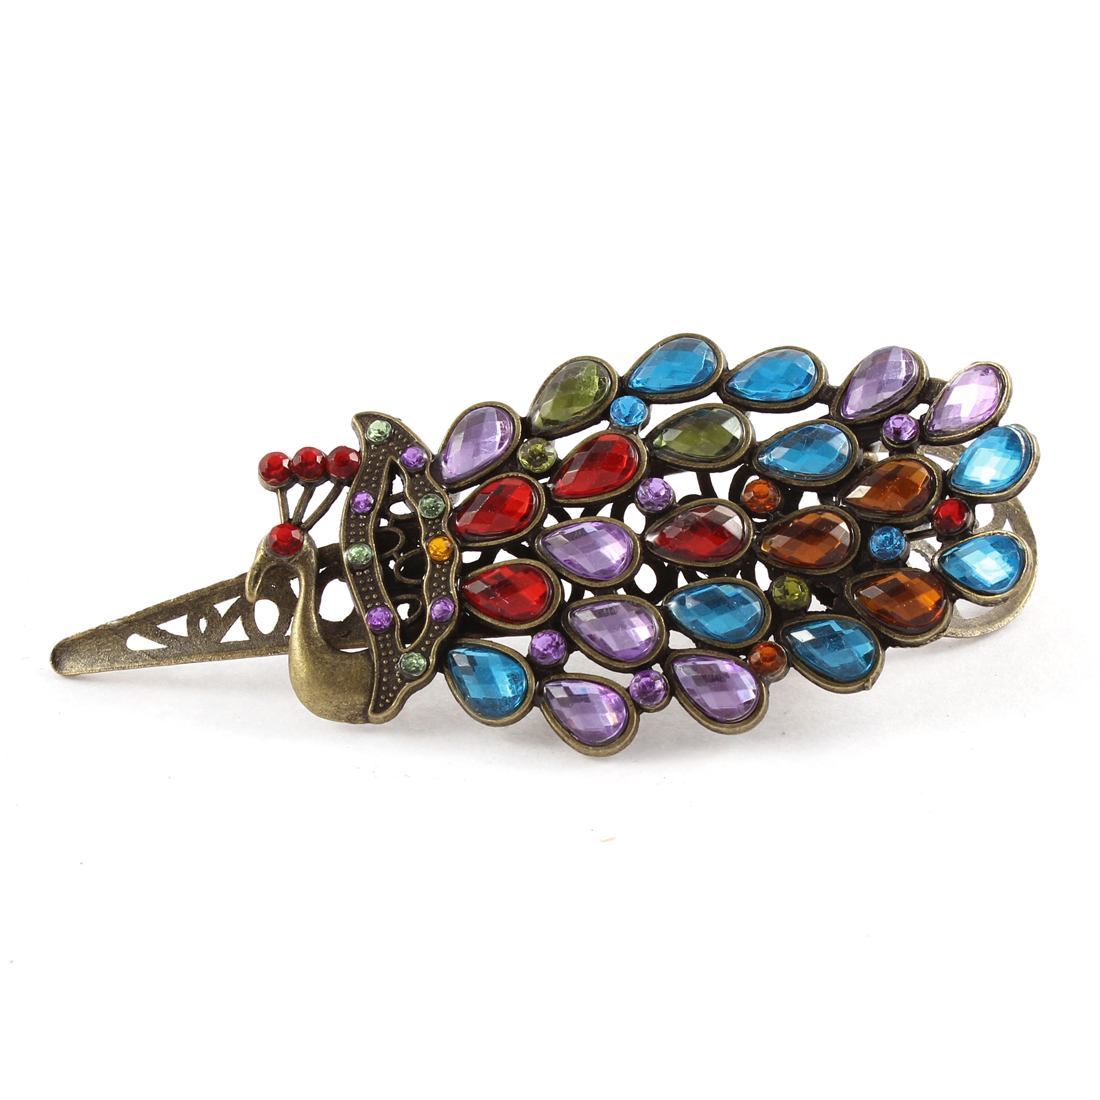 Rhinestone Bling Lady Hair Barrette Hairpin Hairclip Gift Colorful